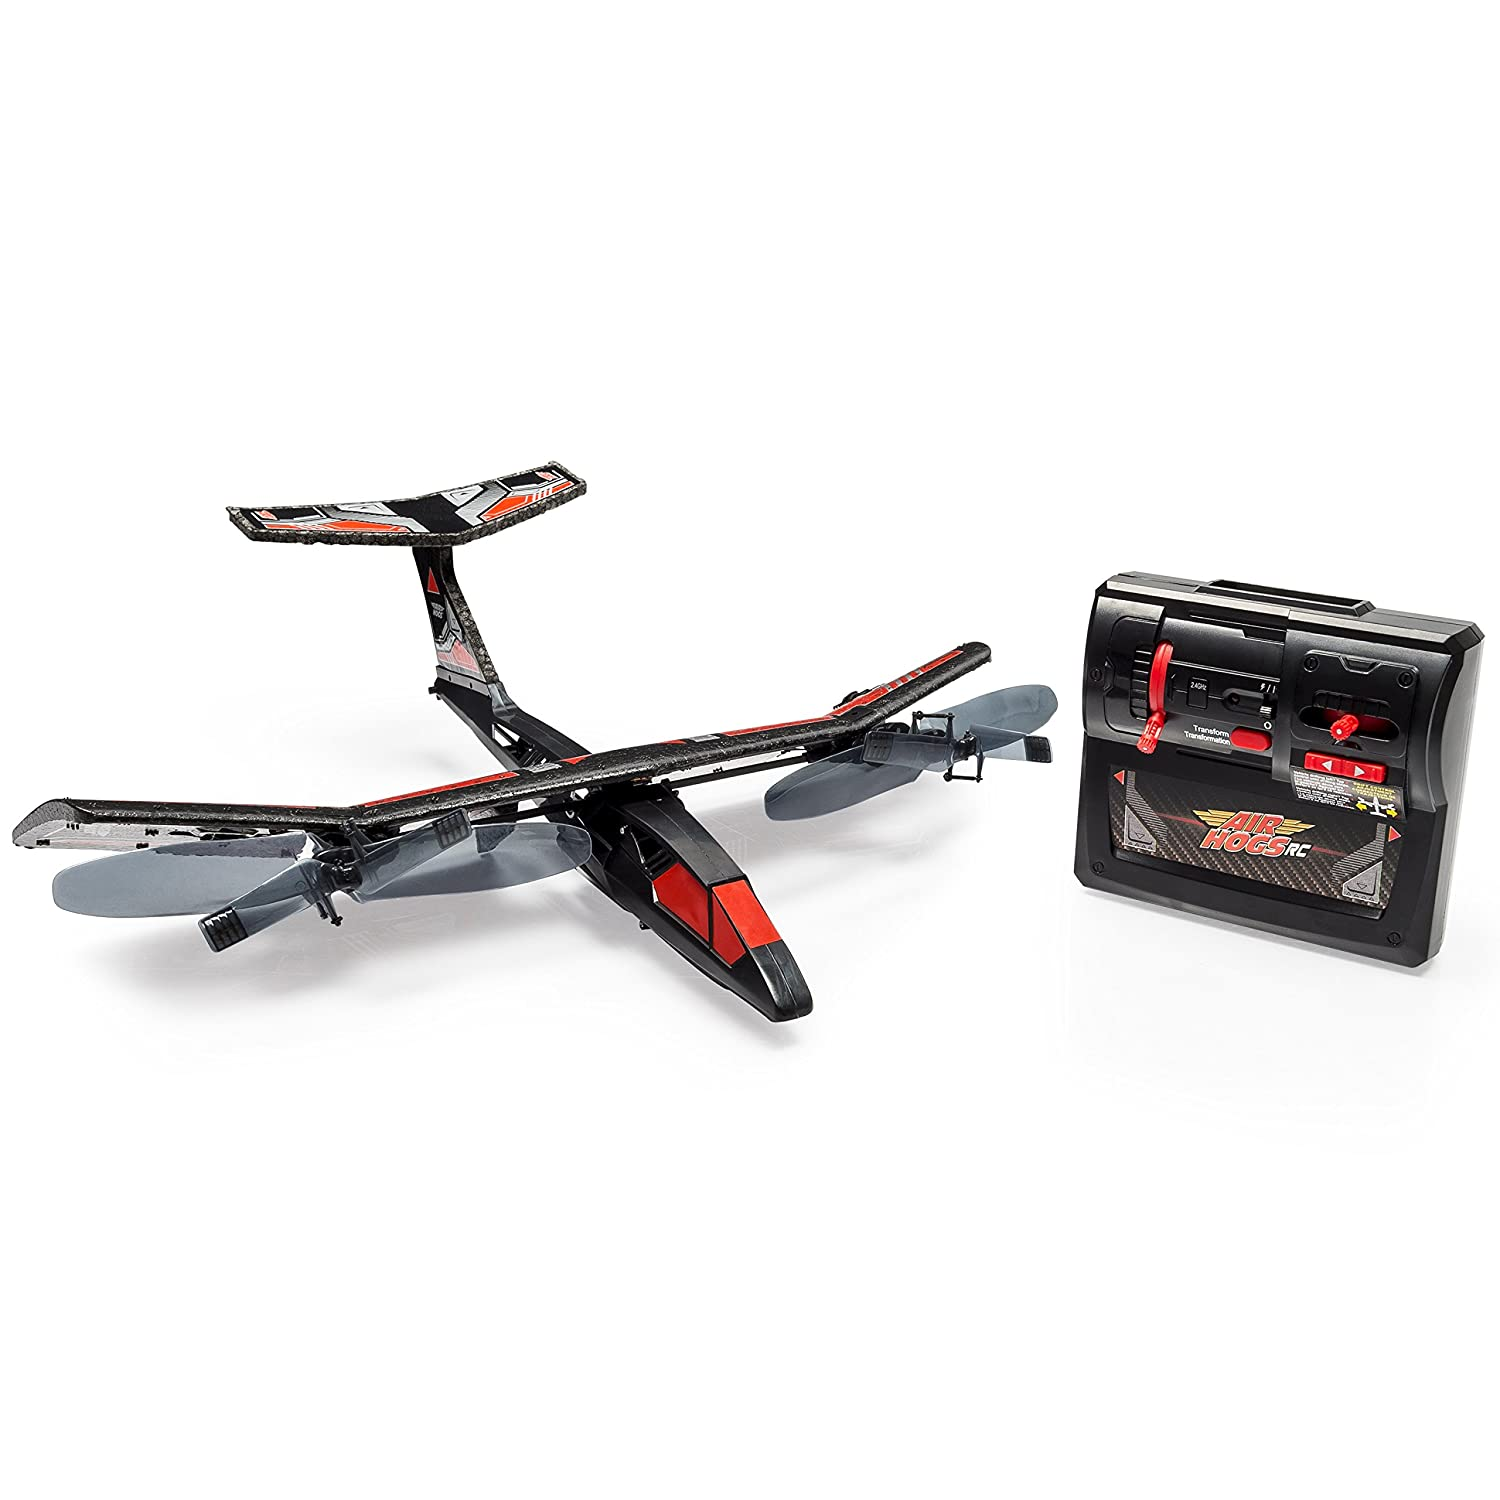 best air hogs helicopter with Gift Ideas For 14 Year Old Teen Boys on Remote Control Flying Toys together with 45982592 additionally 4 1frLN Zsg in addition Remote Controlled Helicopter Reviews furthermore Helicopter Toys For Toddlers.